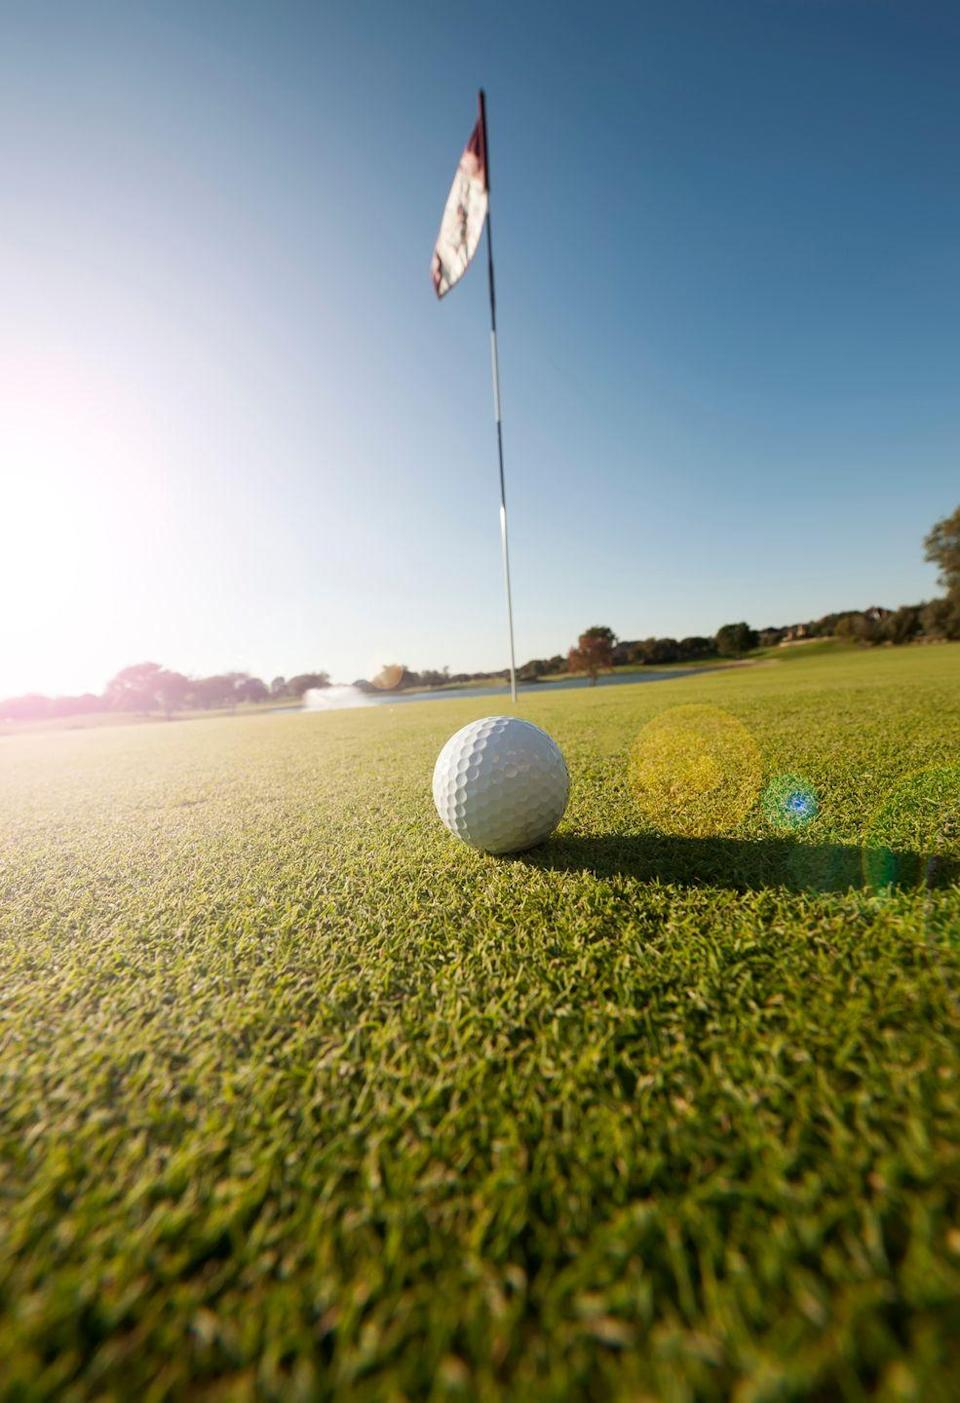 <p>We're sure if you ask dad how he'd like to spend Father's Day, golf will most certainly be at the top of the list. Make his wish come true with tee time at his favorite golf course. Feel free to go the extra mile by organizing his gear ahead of time and arranging his transportation.<br></p>